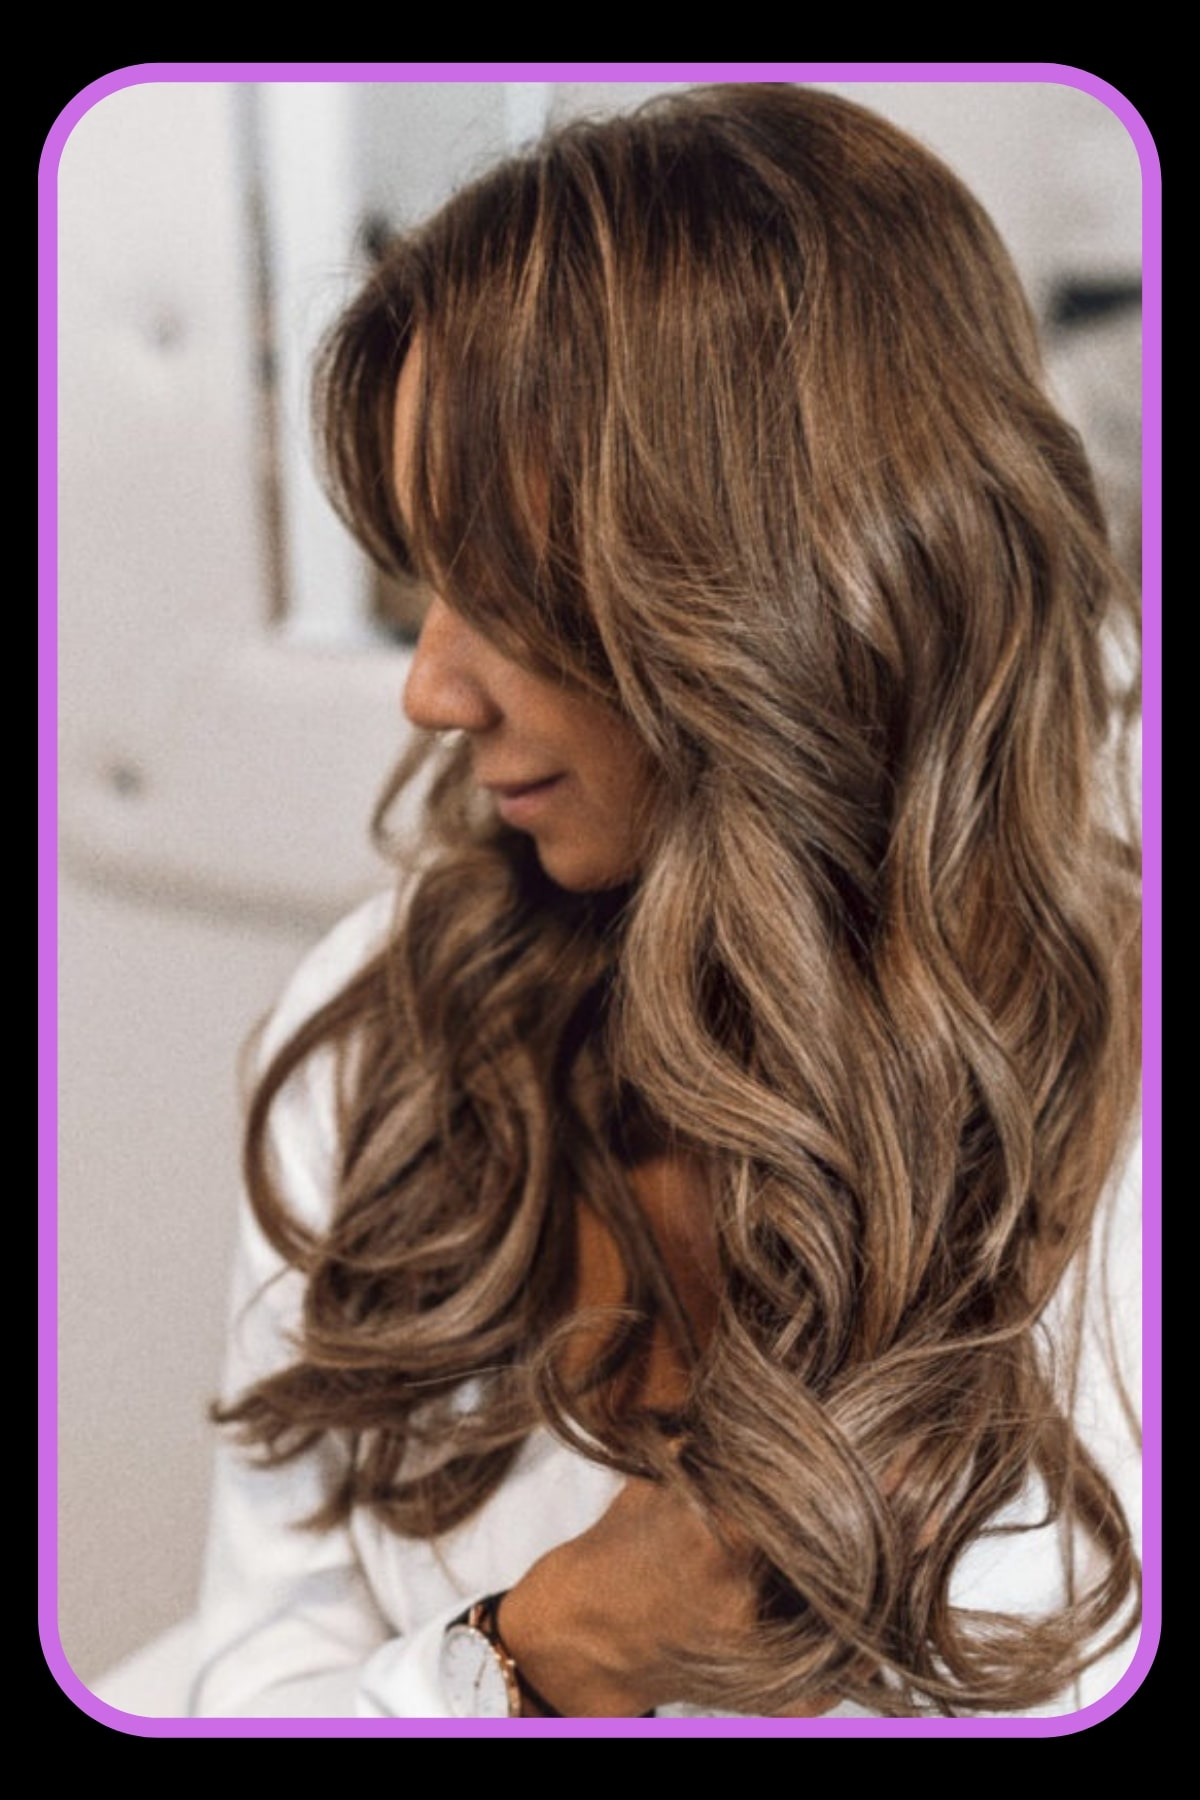 canada hair extension review